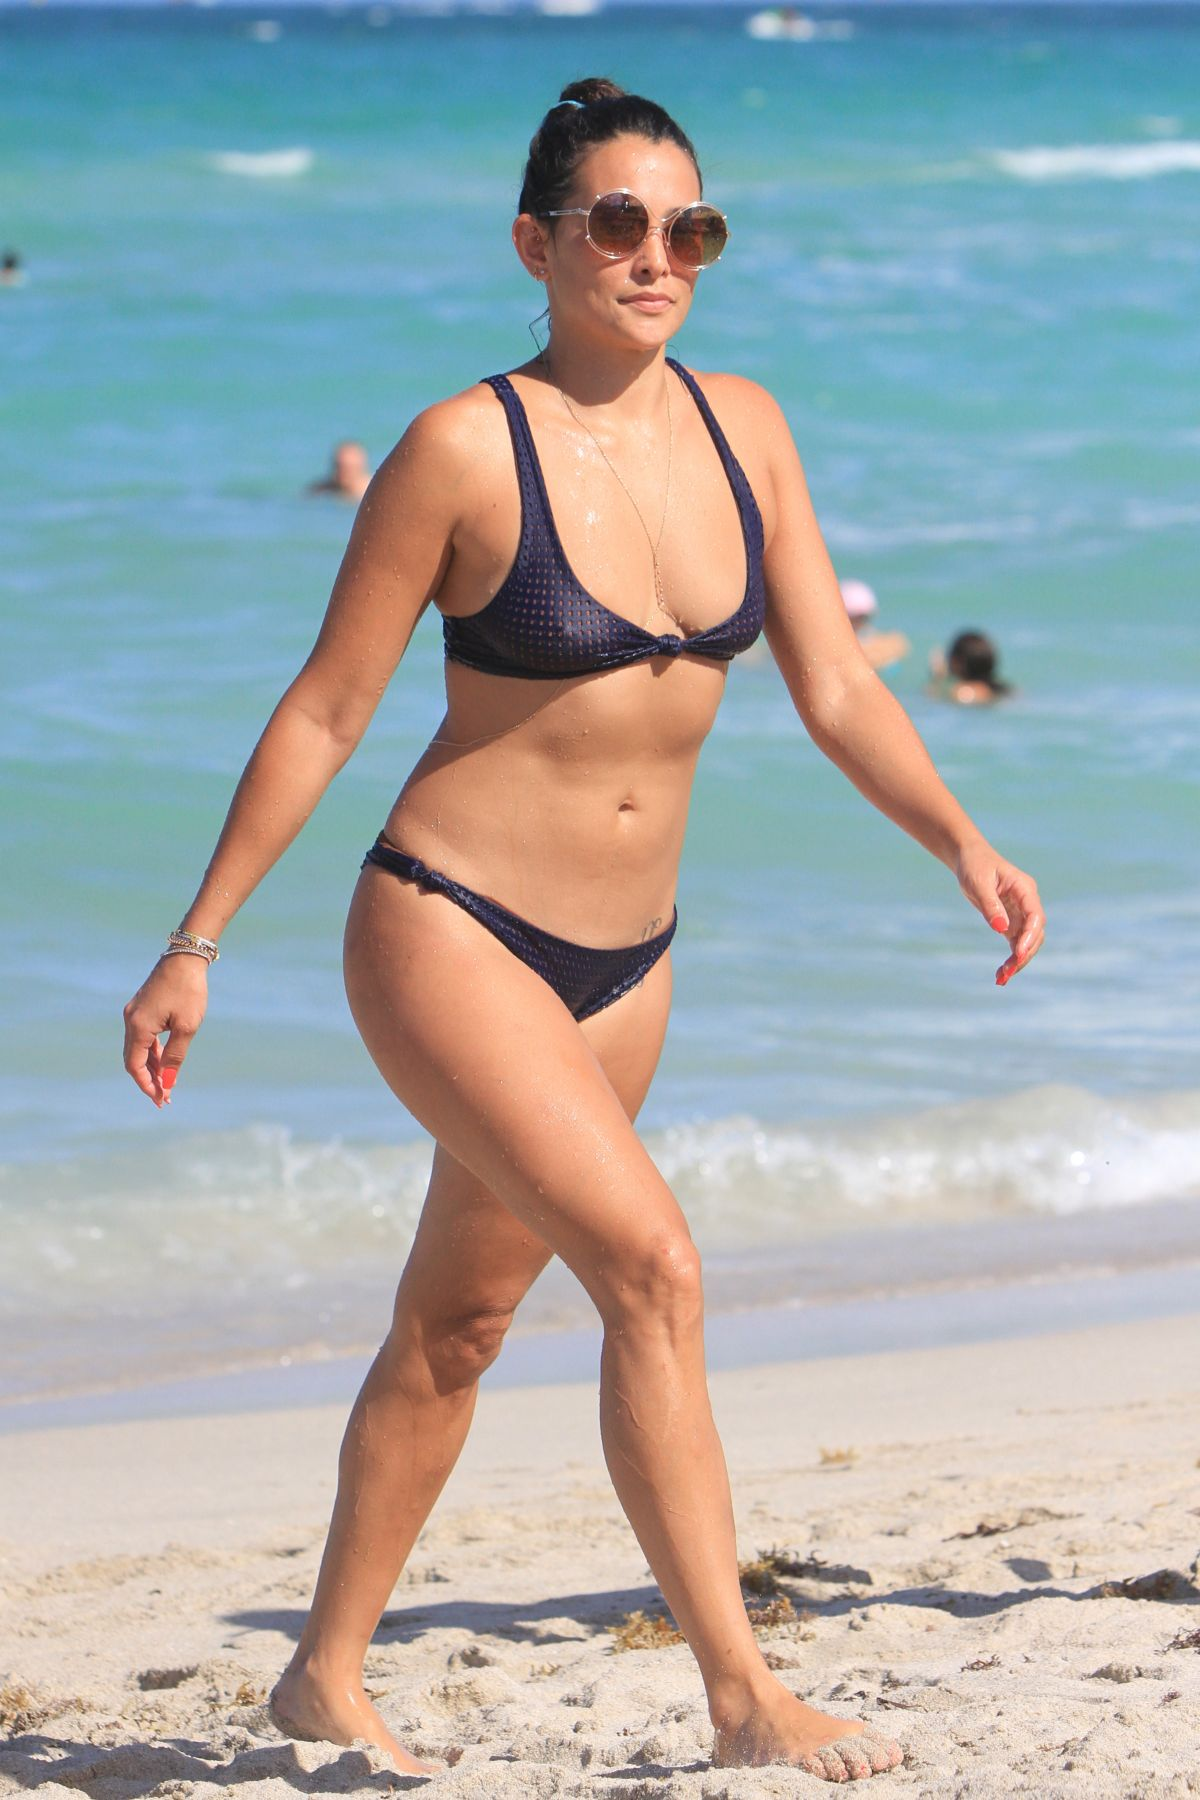 Natalie Martinez In Bikini On The Beach In Miami